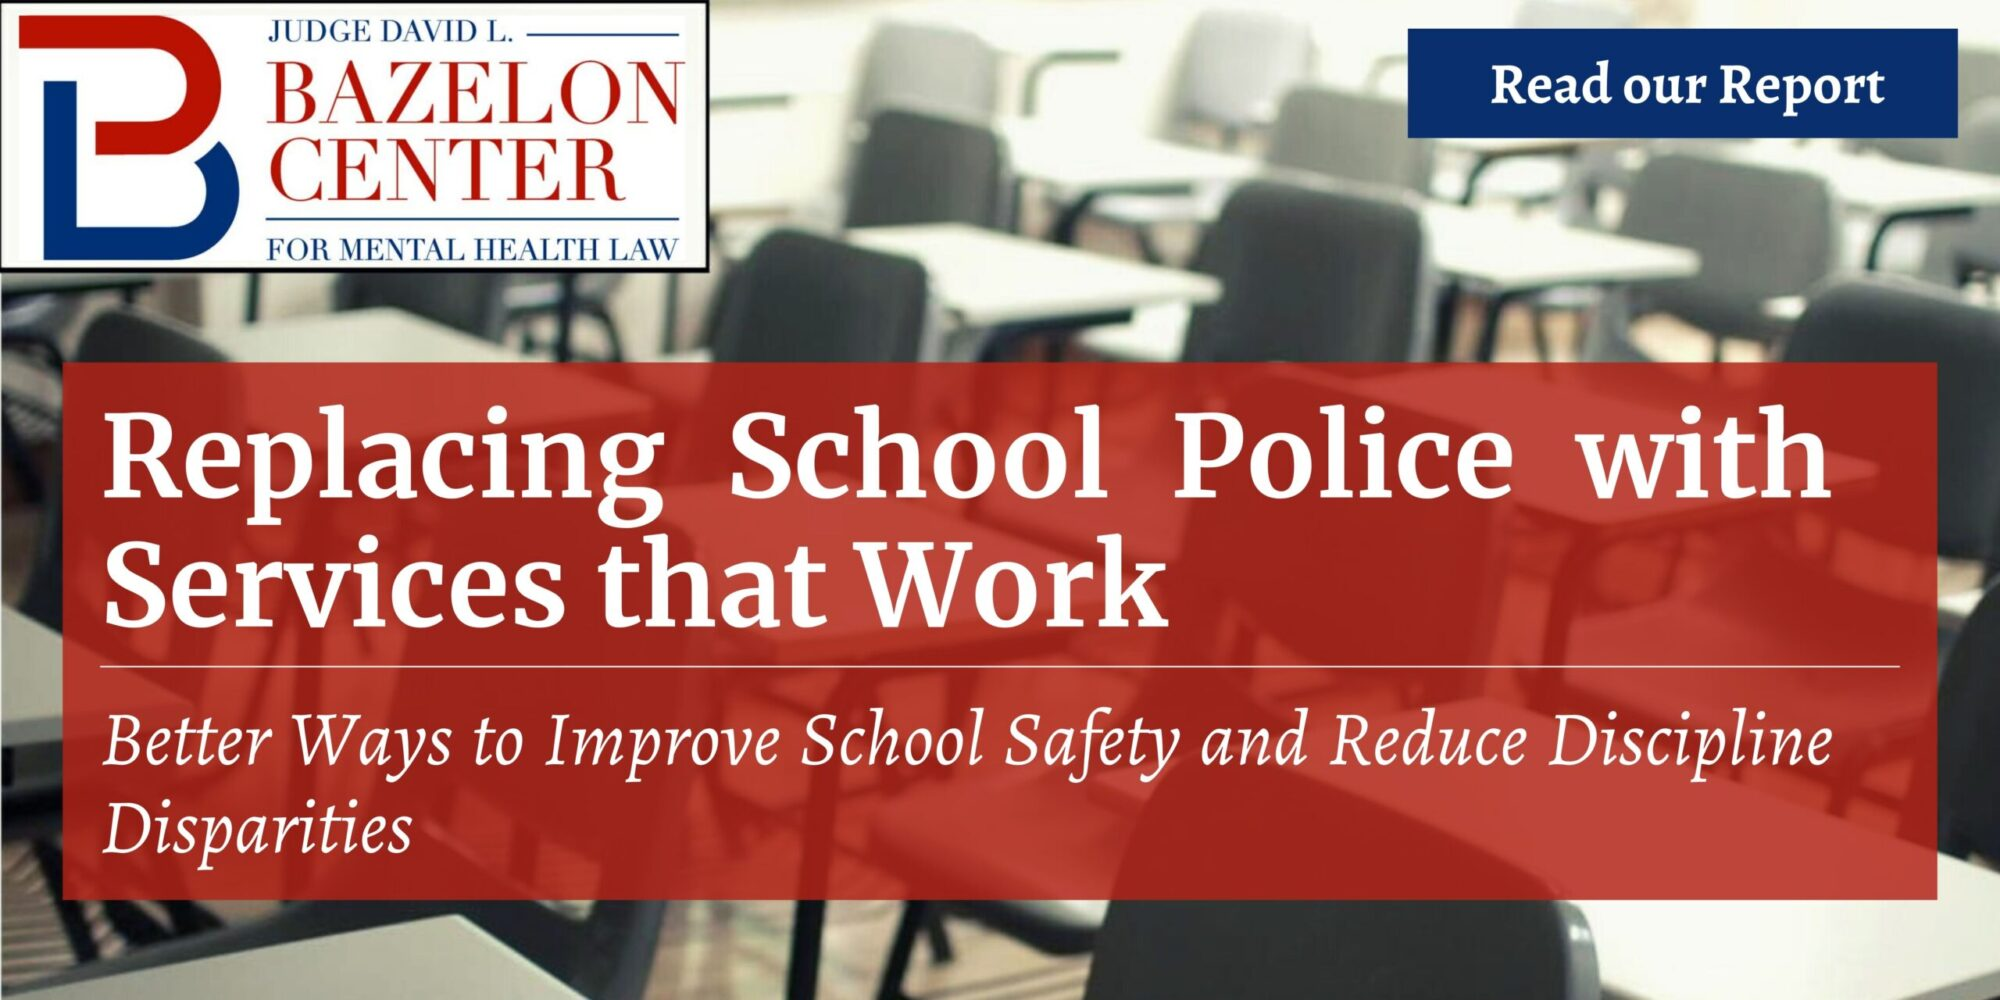 Replacing School Police with Services that Work Better Ways to Improve School Systems and Reduce Discipline Disparities